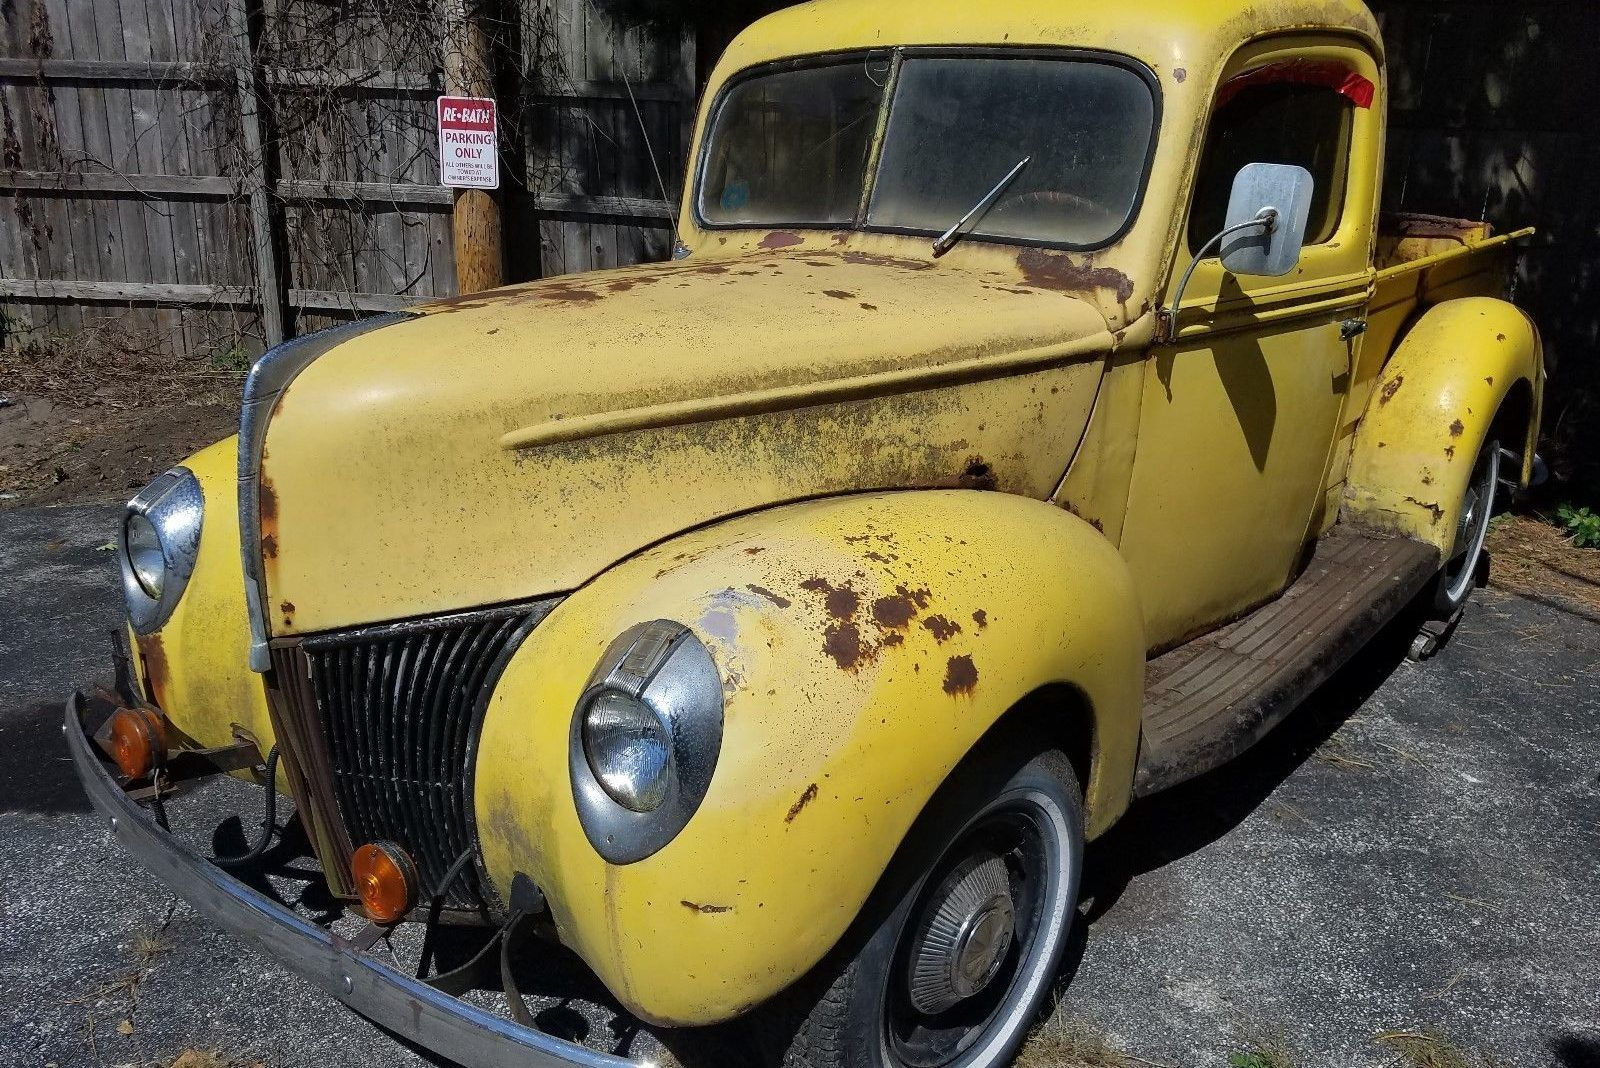 One Owner Barn Find - 1940 Ford Pickup #BarnFinds #Ford - http ...